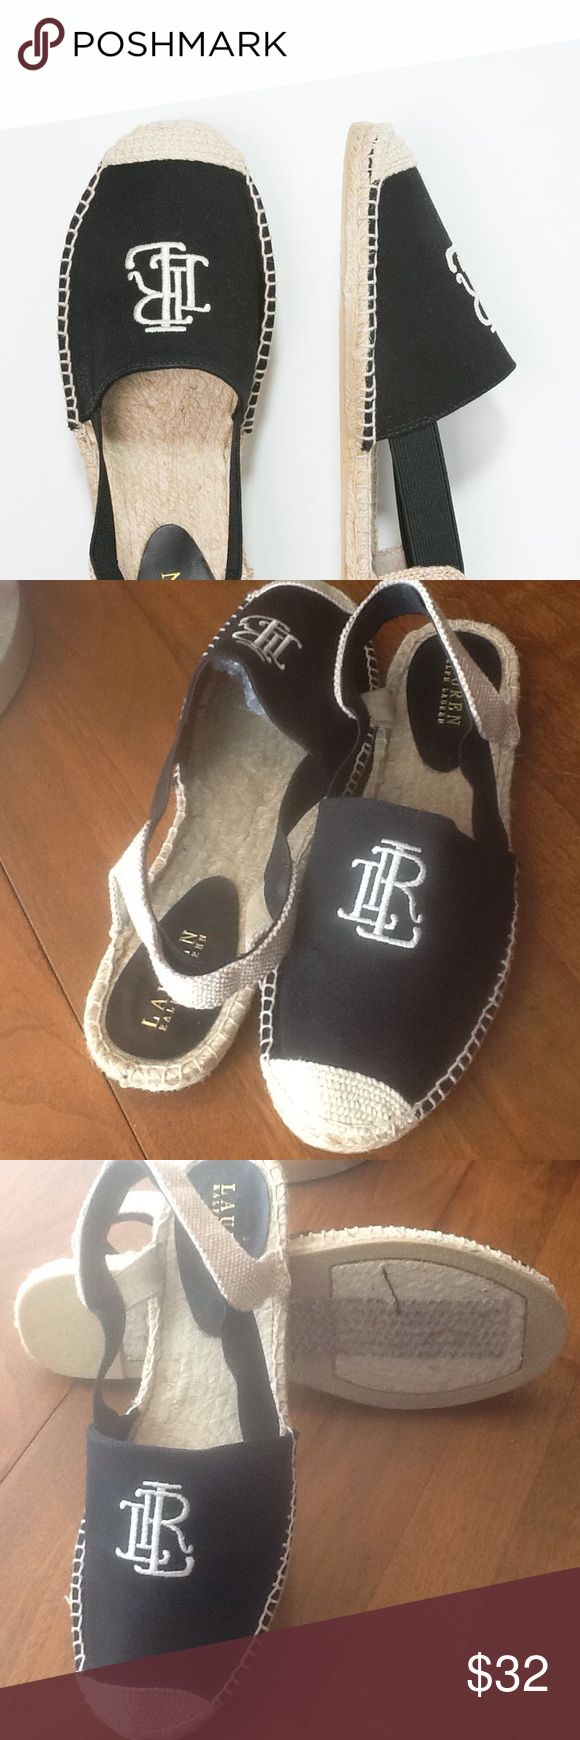 RALPH🏇LAUREN SHOES NWOT Smart looking classic espadrilles as only RL can do. 🎩 Brand new.  Perfect for a summer afternoon at the beach or market.  Pair with your skinnys or skirt and a crisp white linen top.  Open to reasonable offers 🕶. Ralph Lauren Shoes Espadrilles